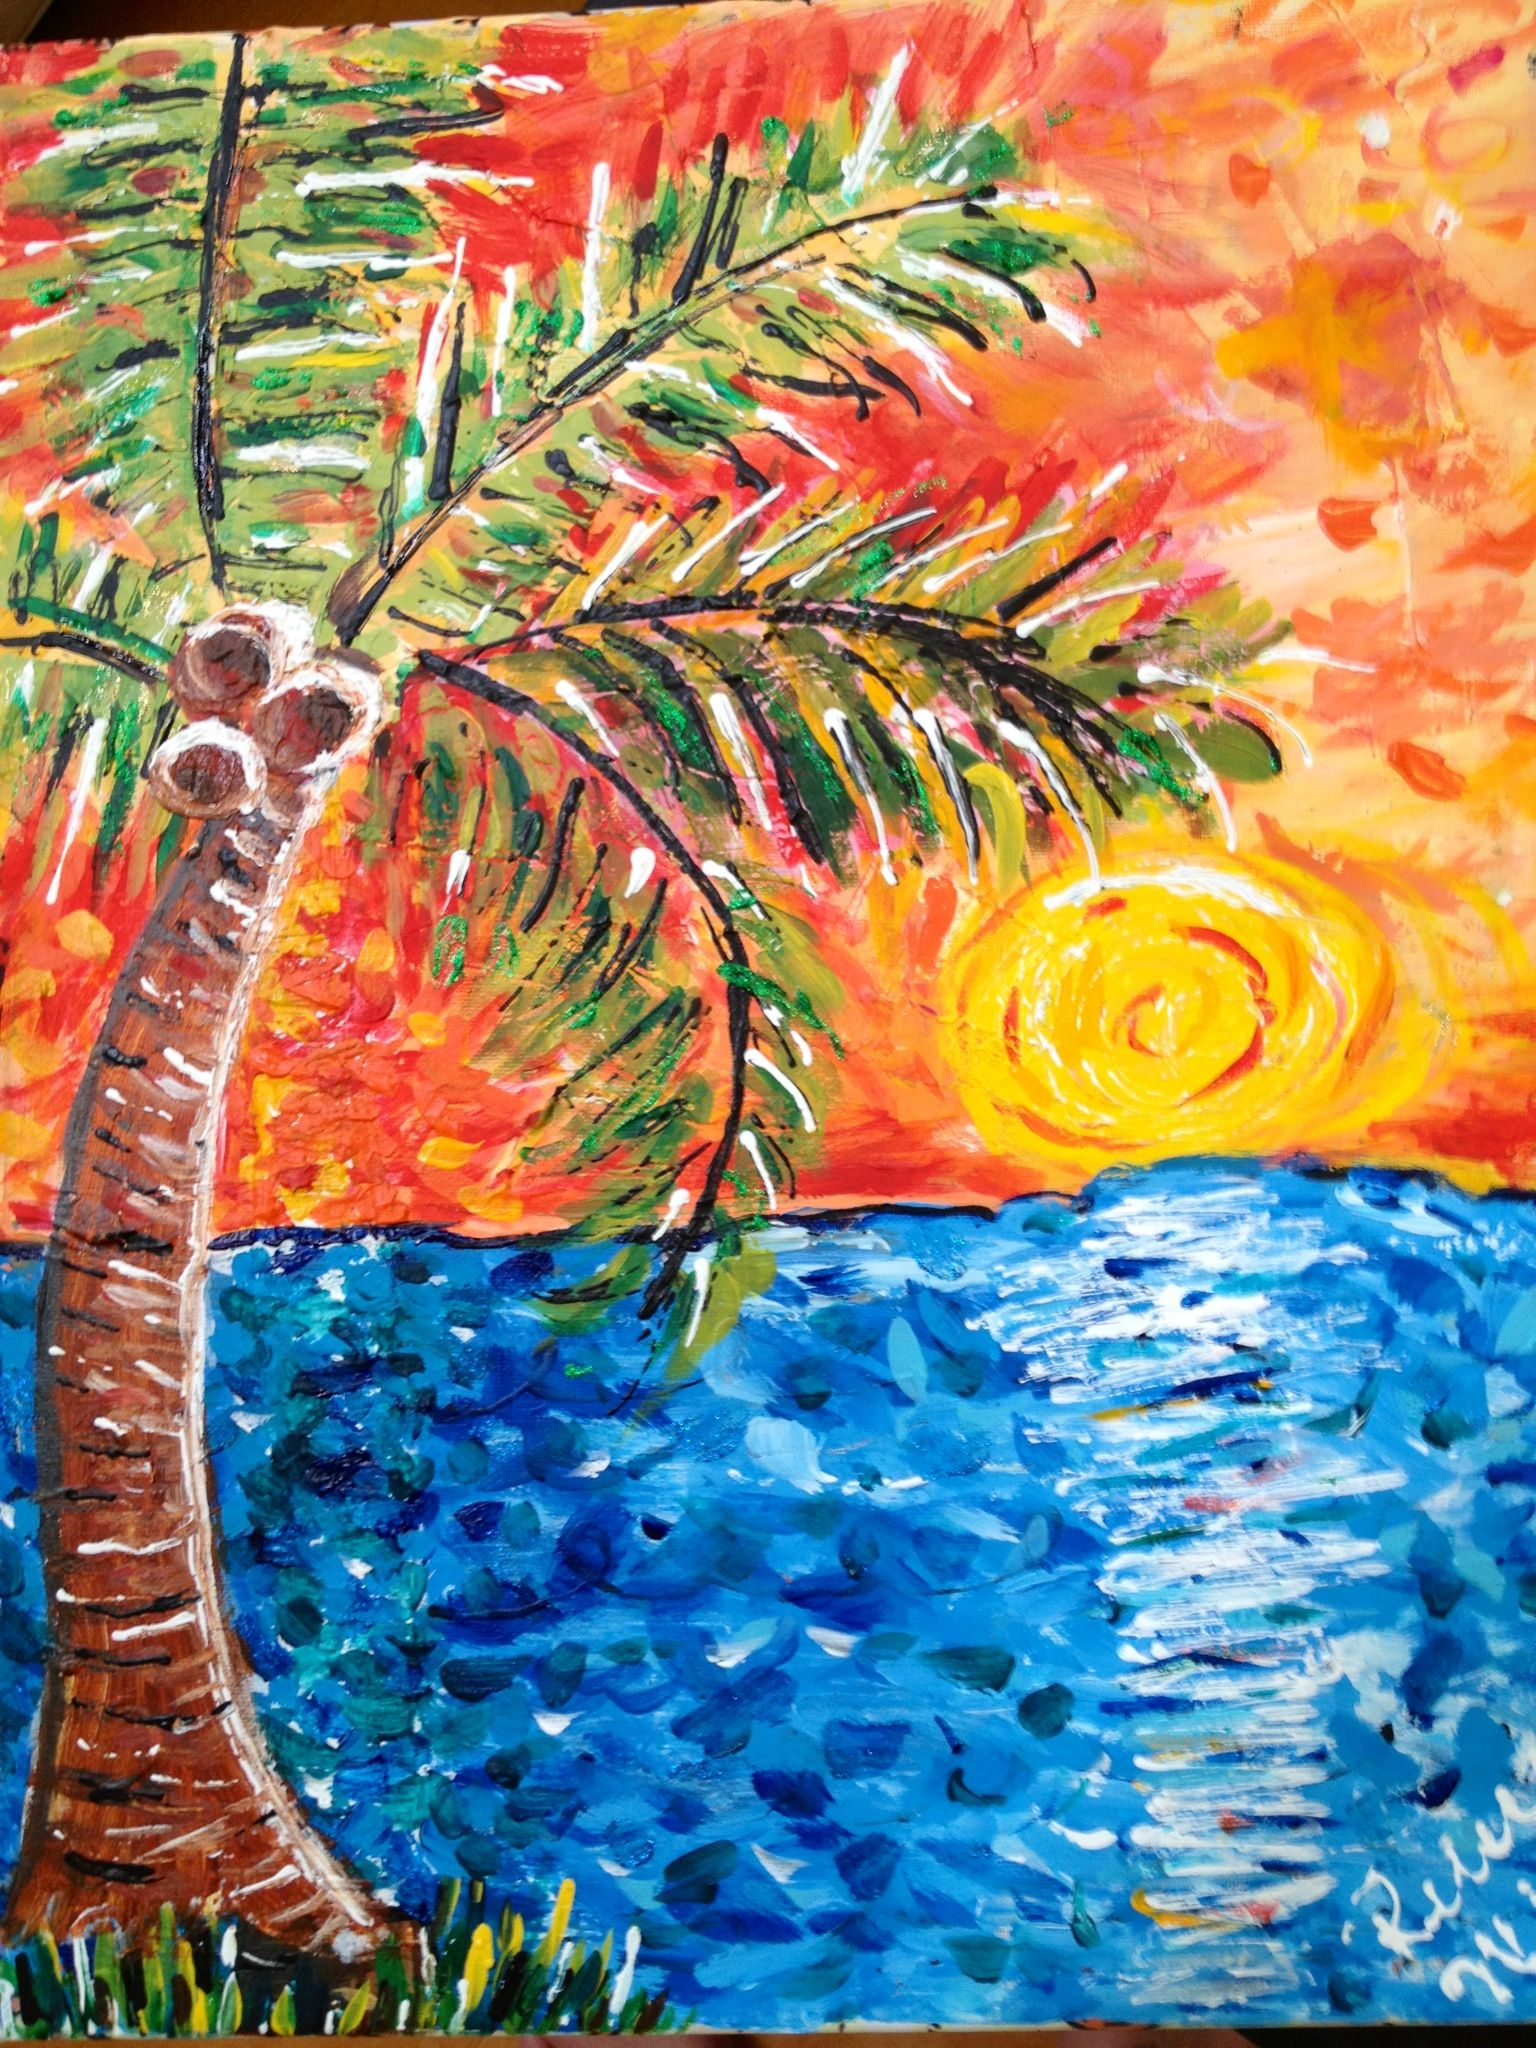 Sunset Palm Tree Painting 16x20 75 Original Mixed Media